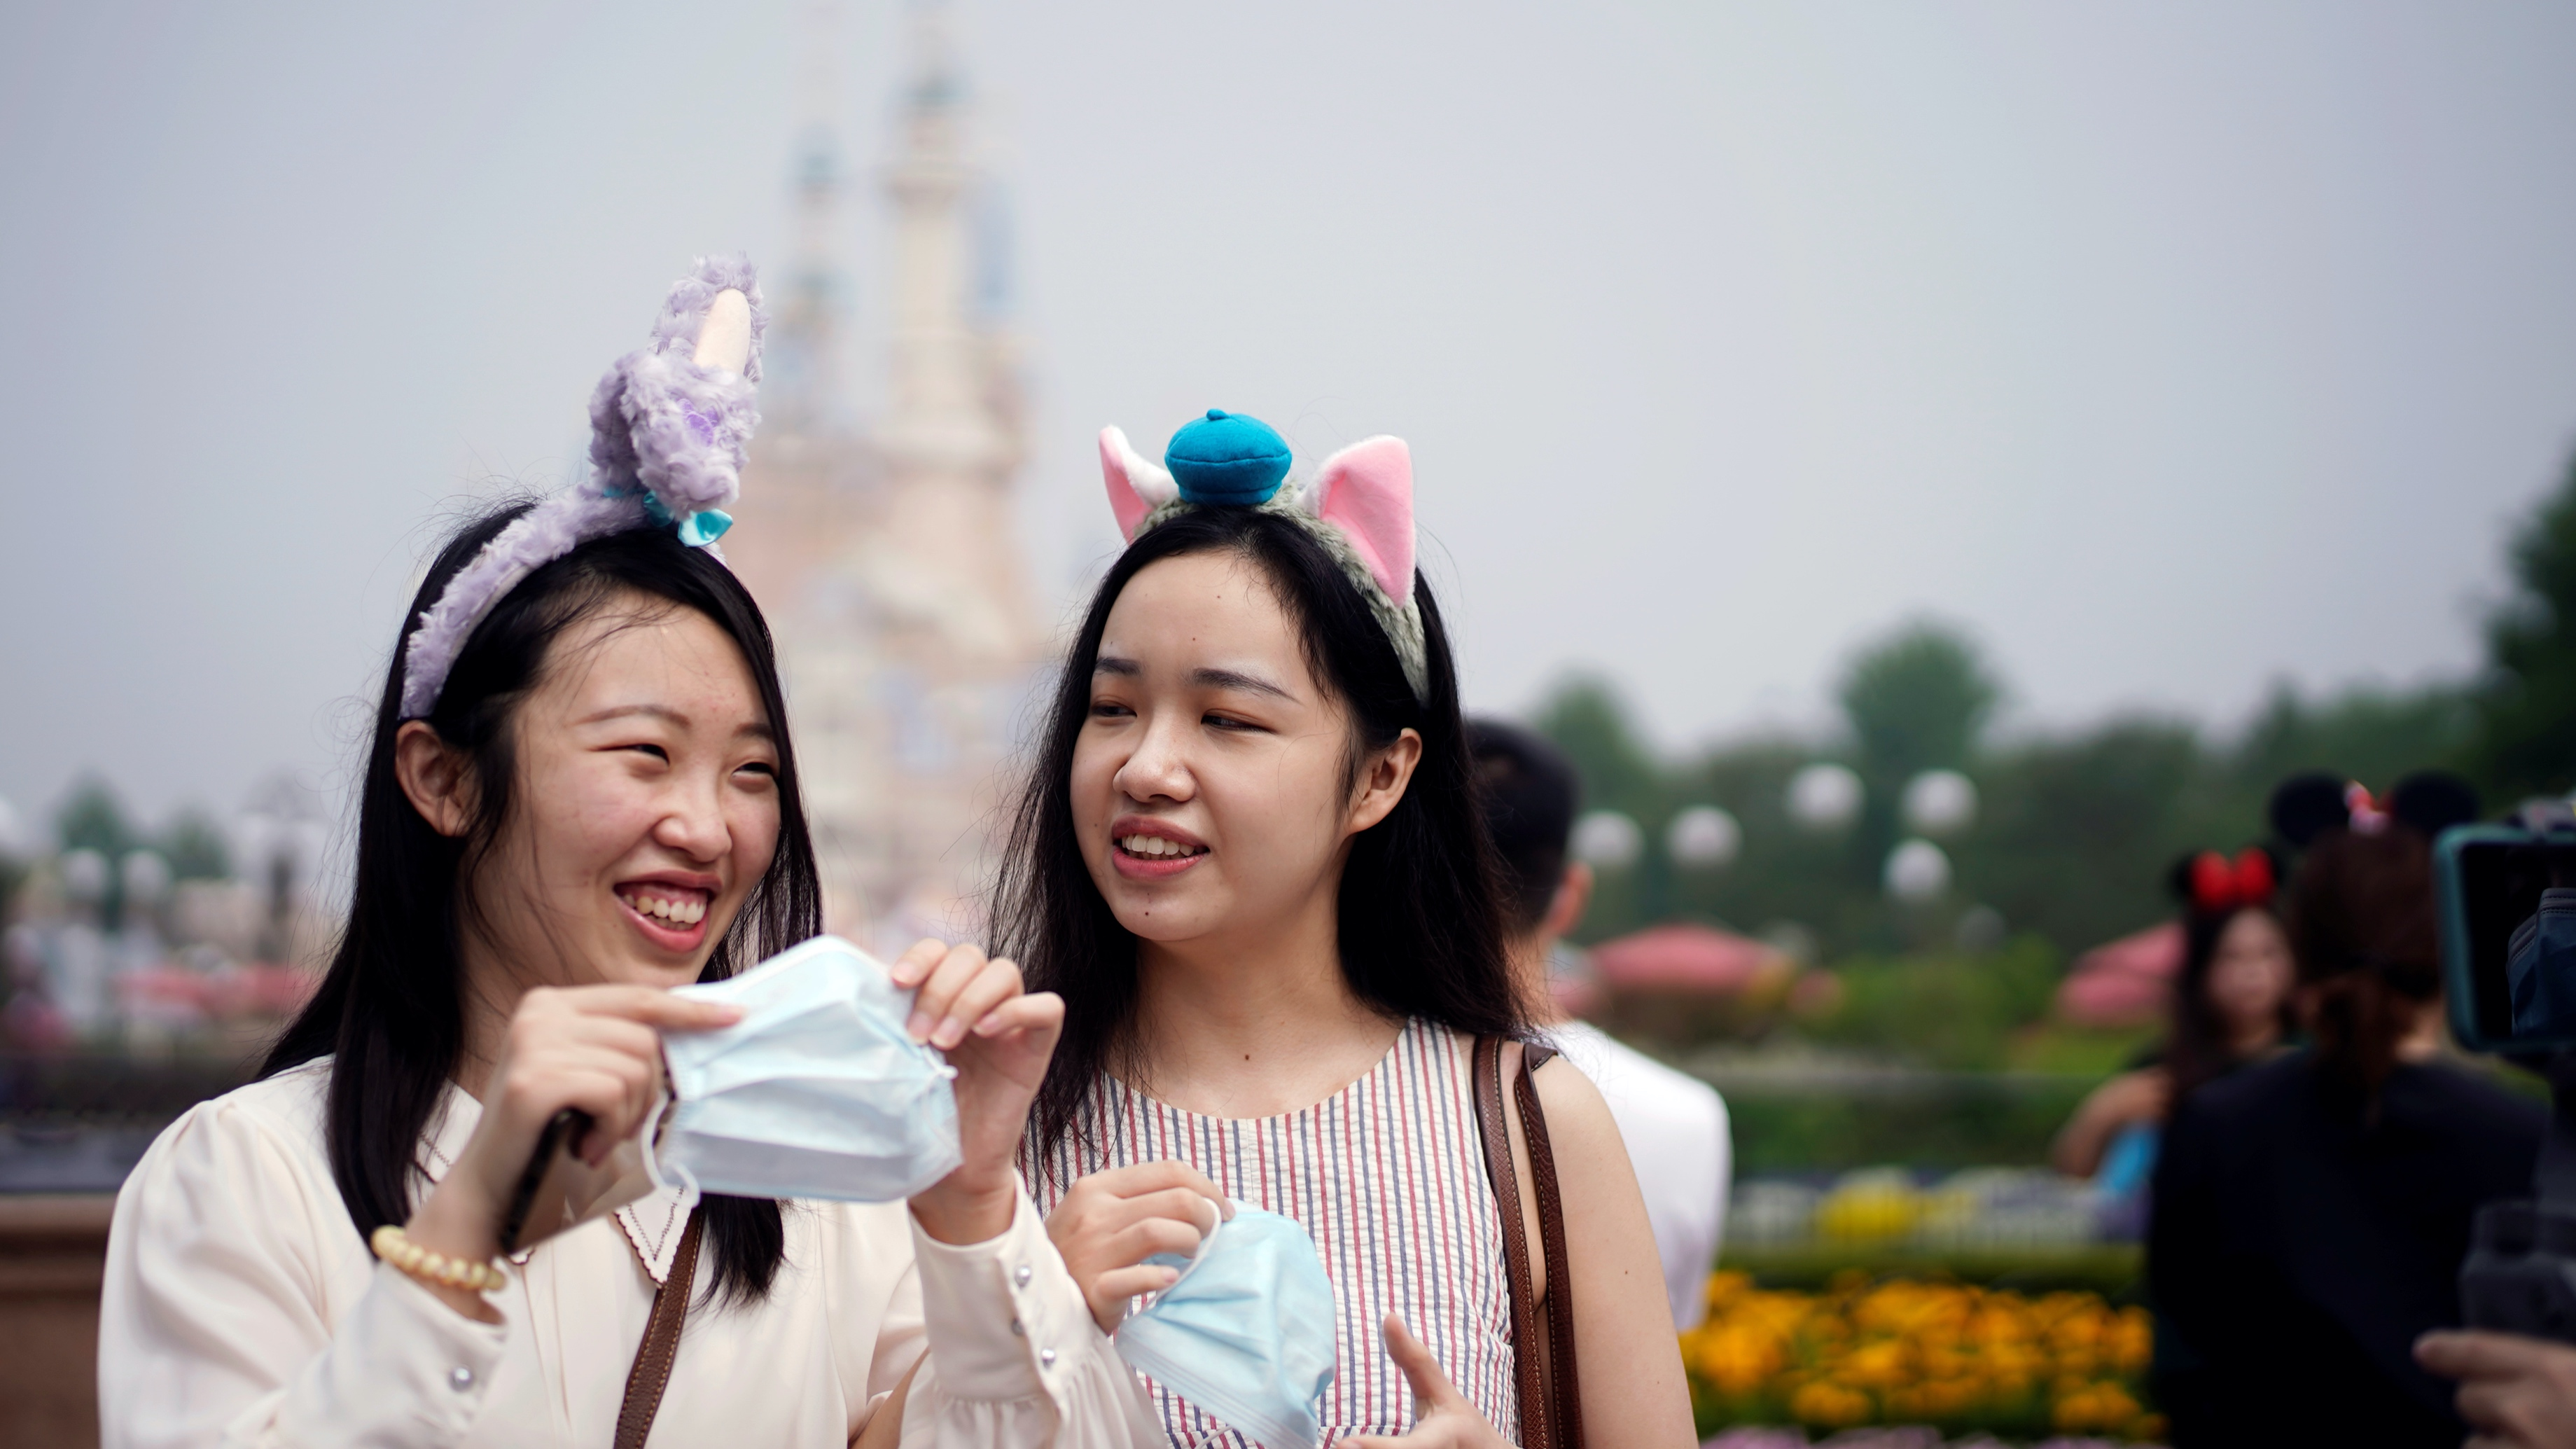 Two young women with headbands hold face masks at theShanghaiDisneyland theme park as it reopens following a shutdown due to the coronavirus disease